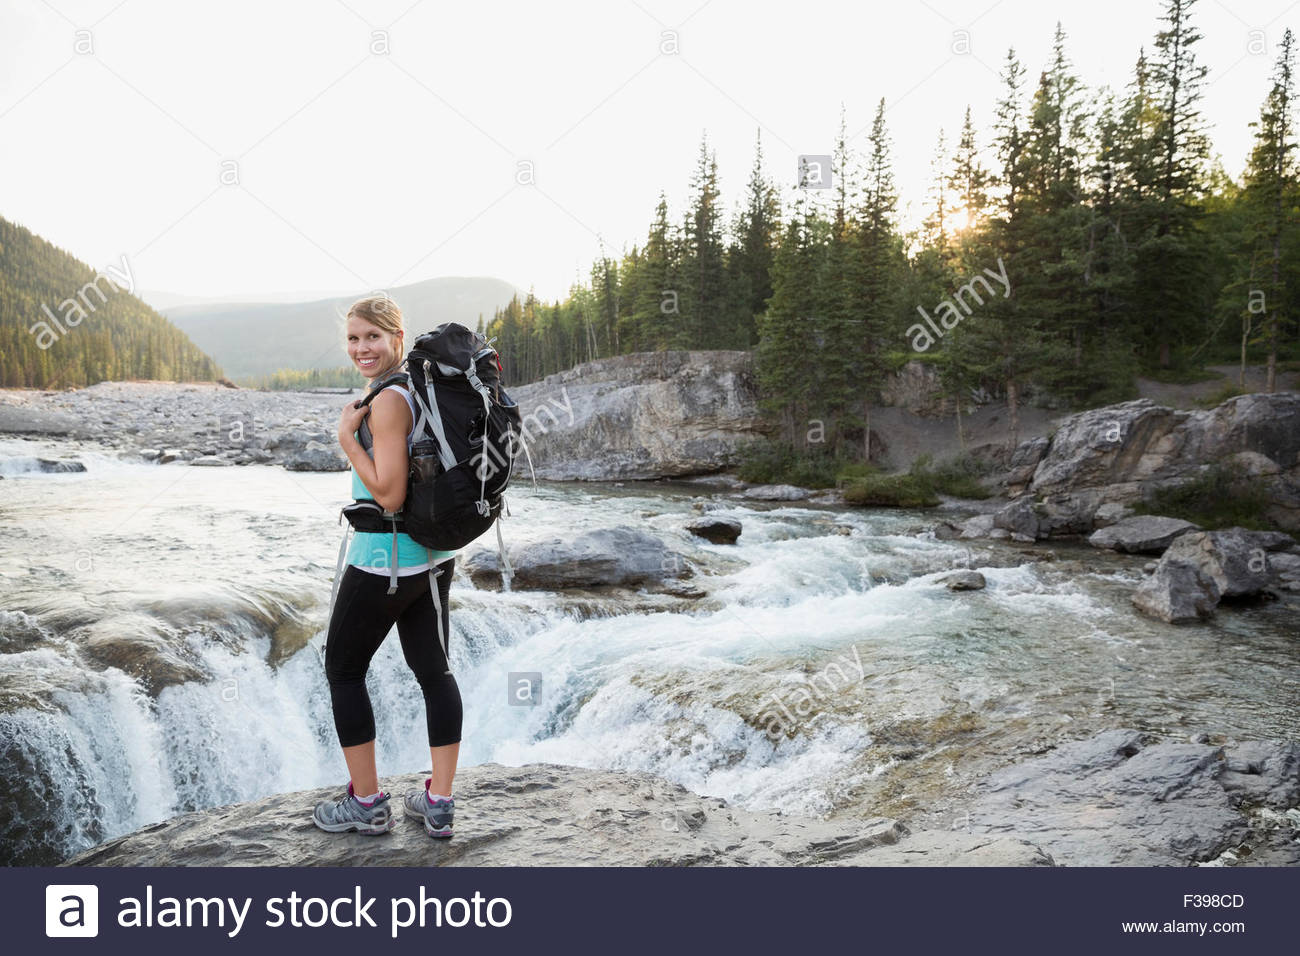 Portrait smiling hiker with backpack at craggy waterfall - Stock Image